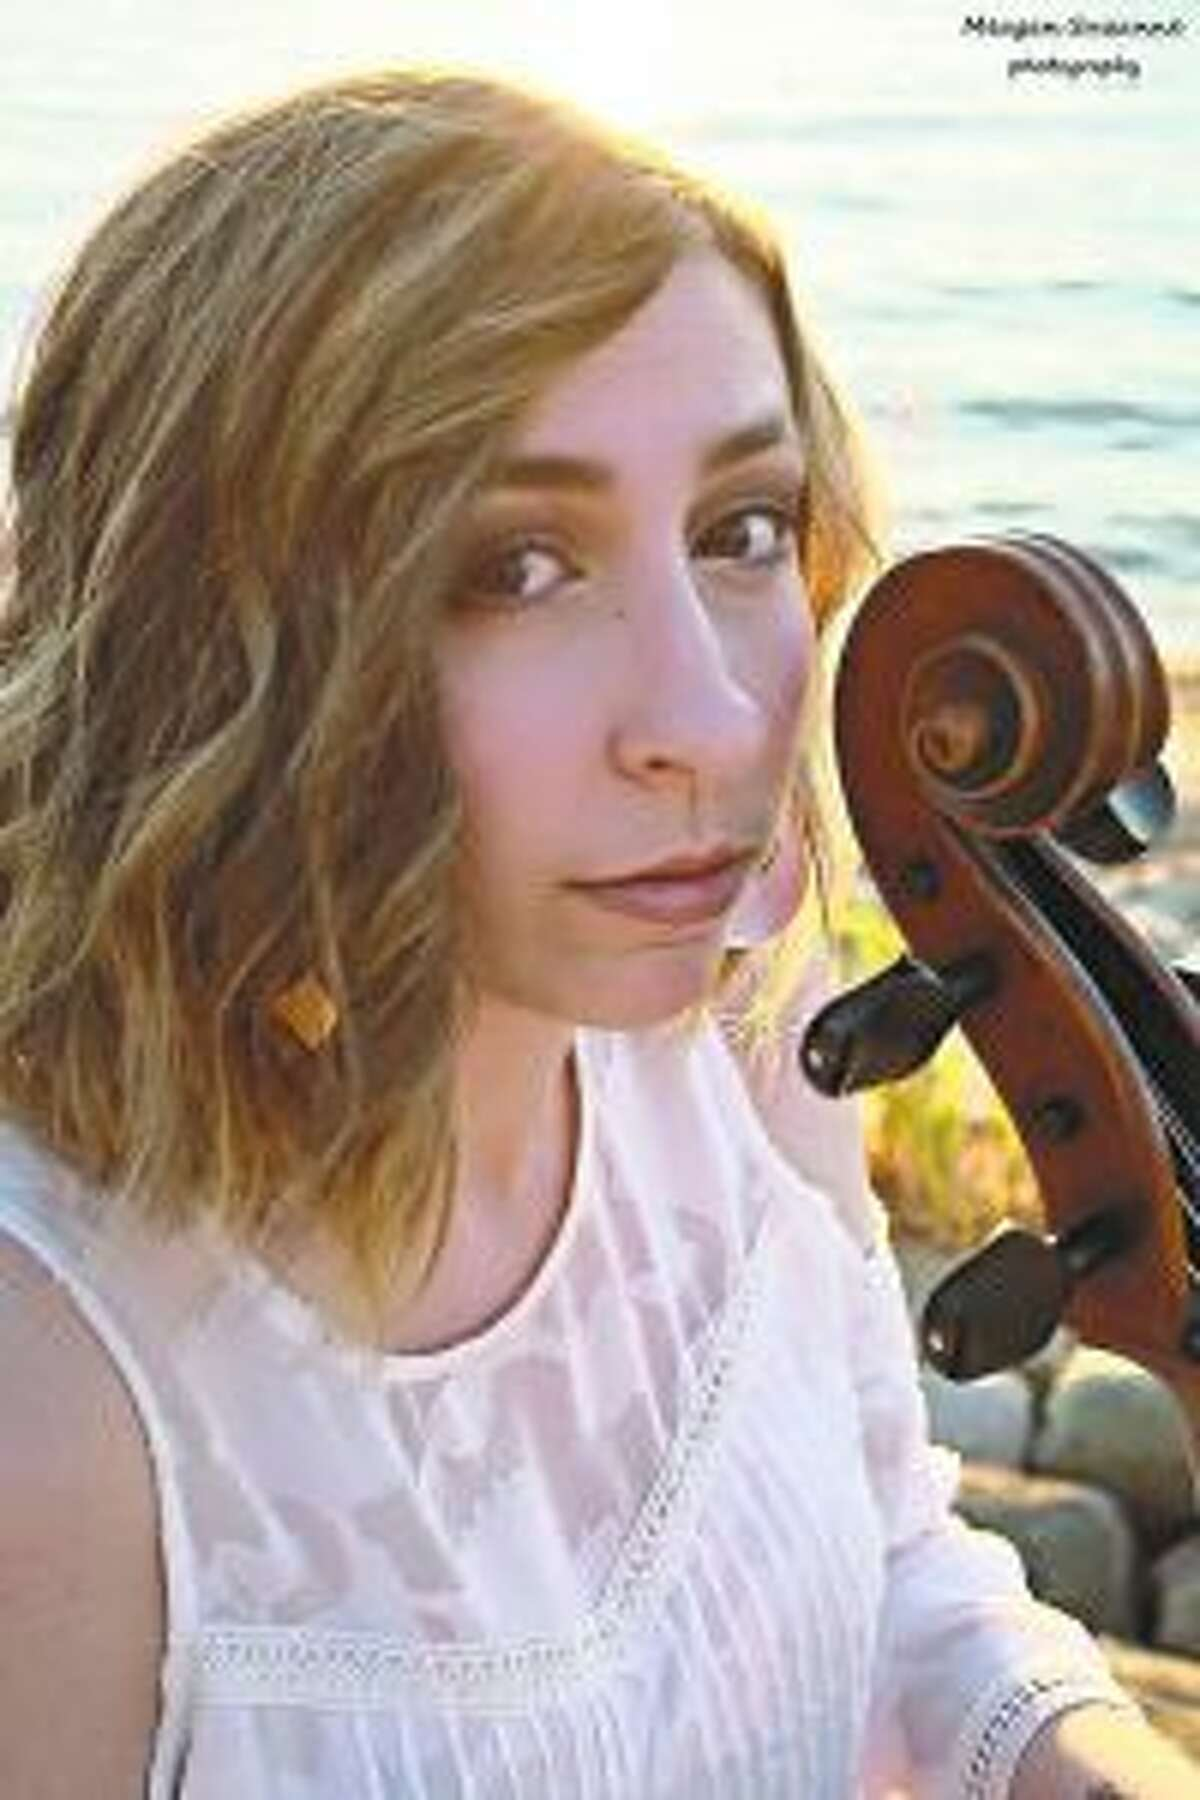 Benzie Area Symphony Orchestra will launch its 2019 summer season at 4 p.m. on Sunday at the Benzie Central High School Auditorium. The event will feature cellist Carrie Brannen. (Courtesy photo)